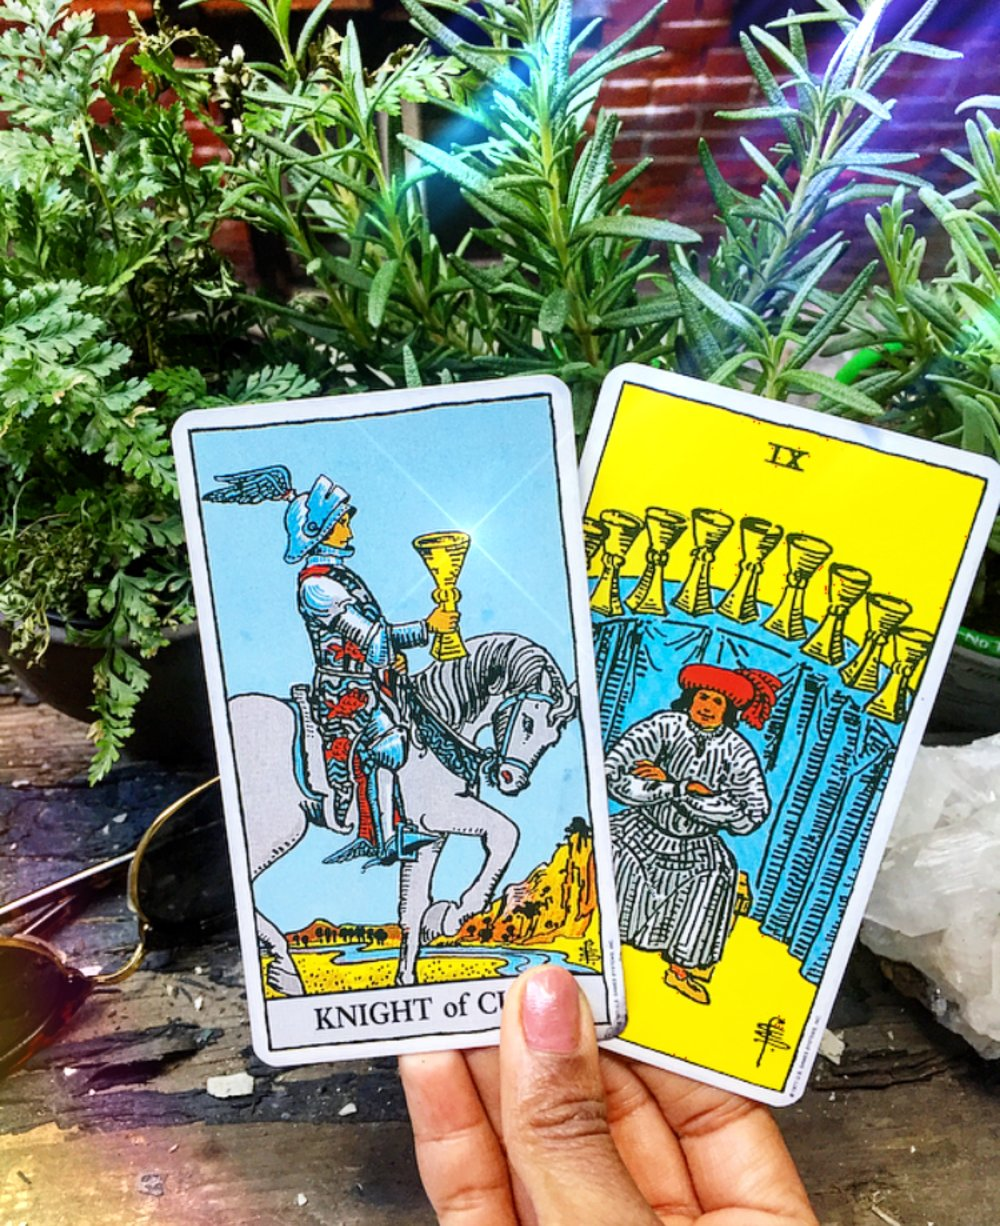 Knight of Cups & Nine of Cups